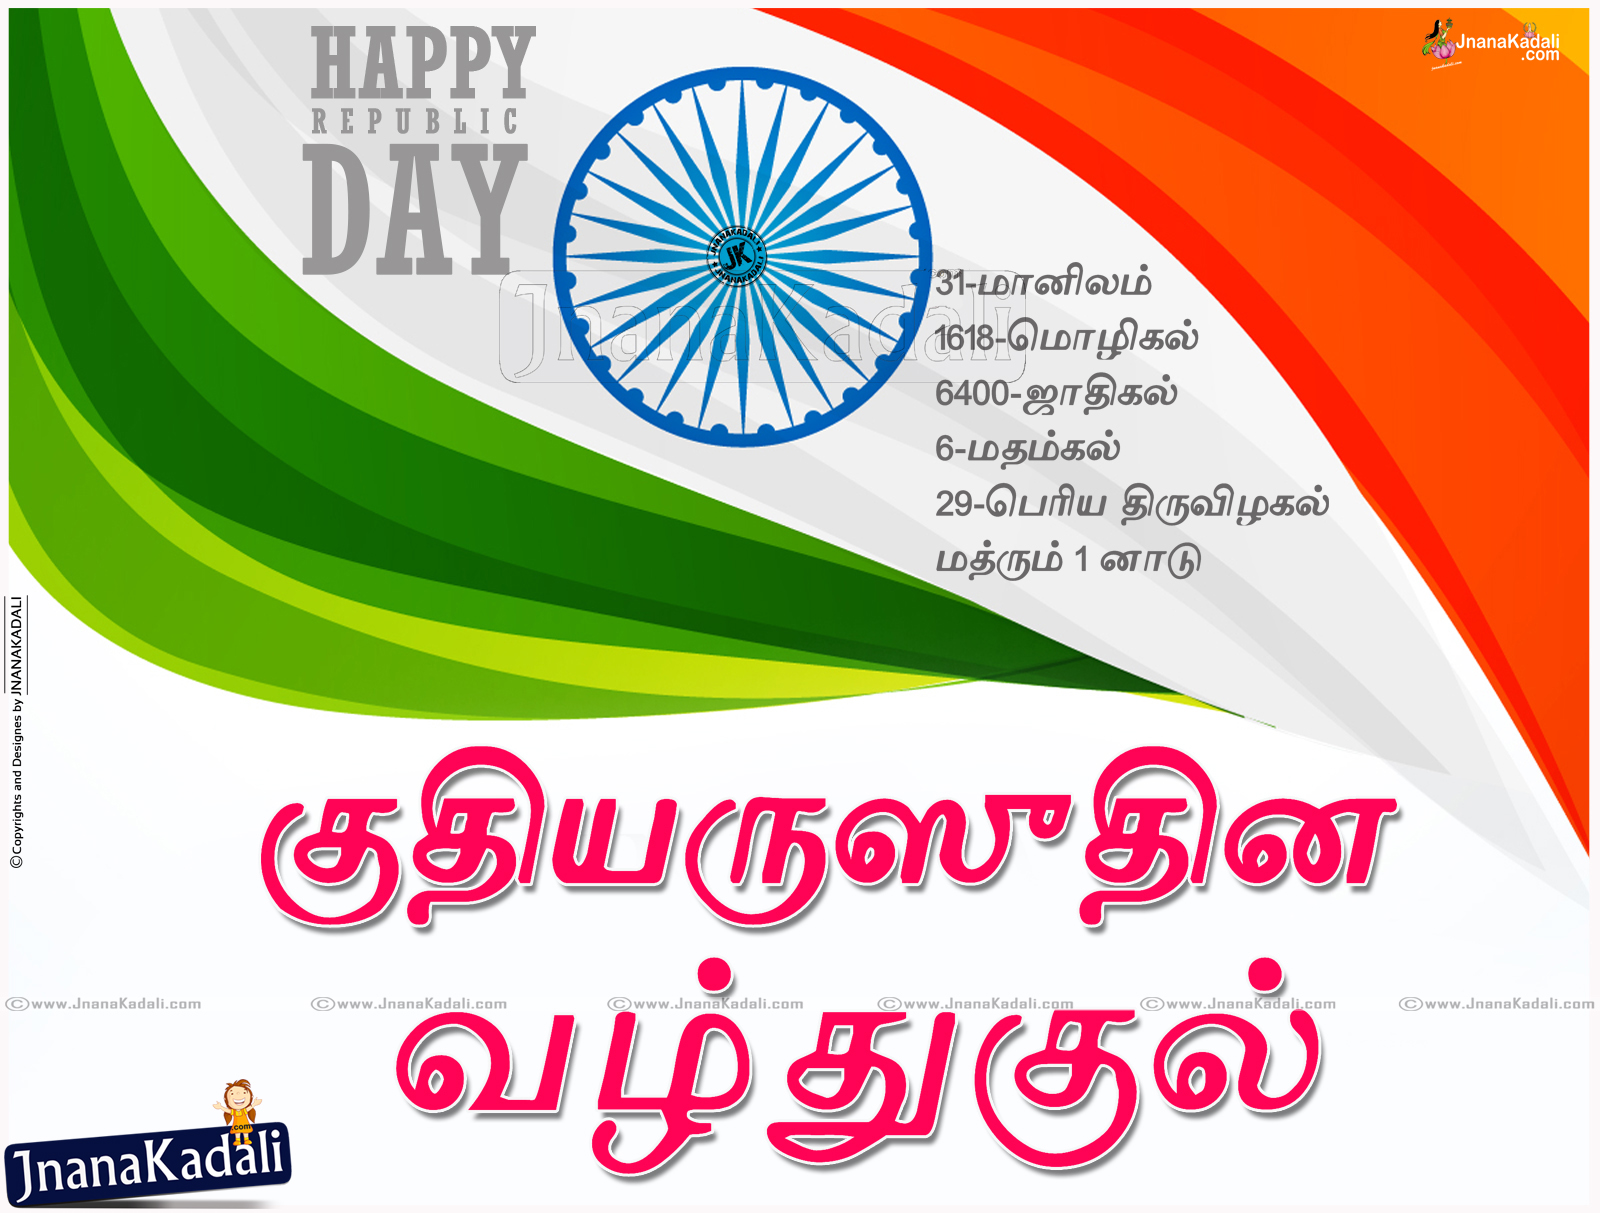 happy republic day images kudiyarasu thinam nalvaazhthukkal here is a 2016 happy republic day greetings in tamil tamil republic day wishes and essay tamil republic day greeting cards online 2016 happy republic day